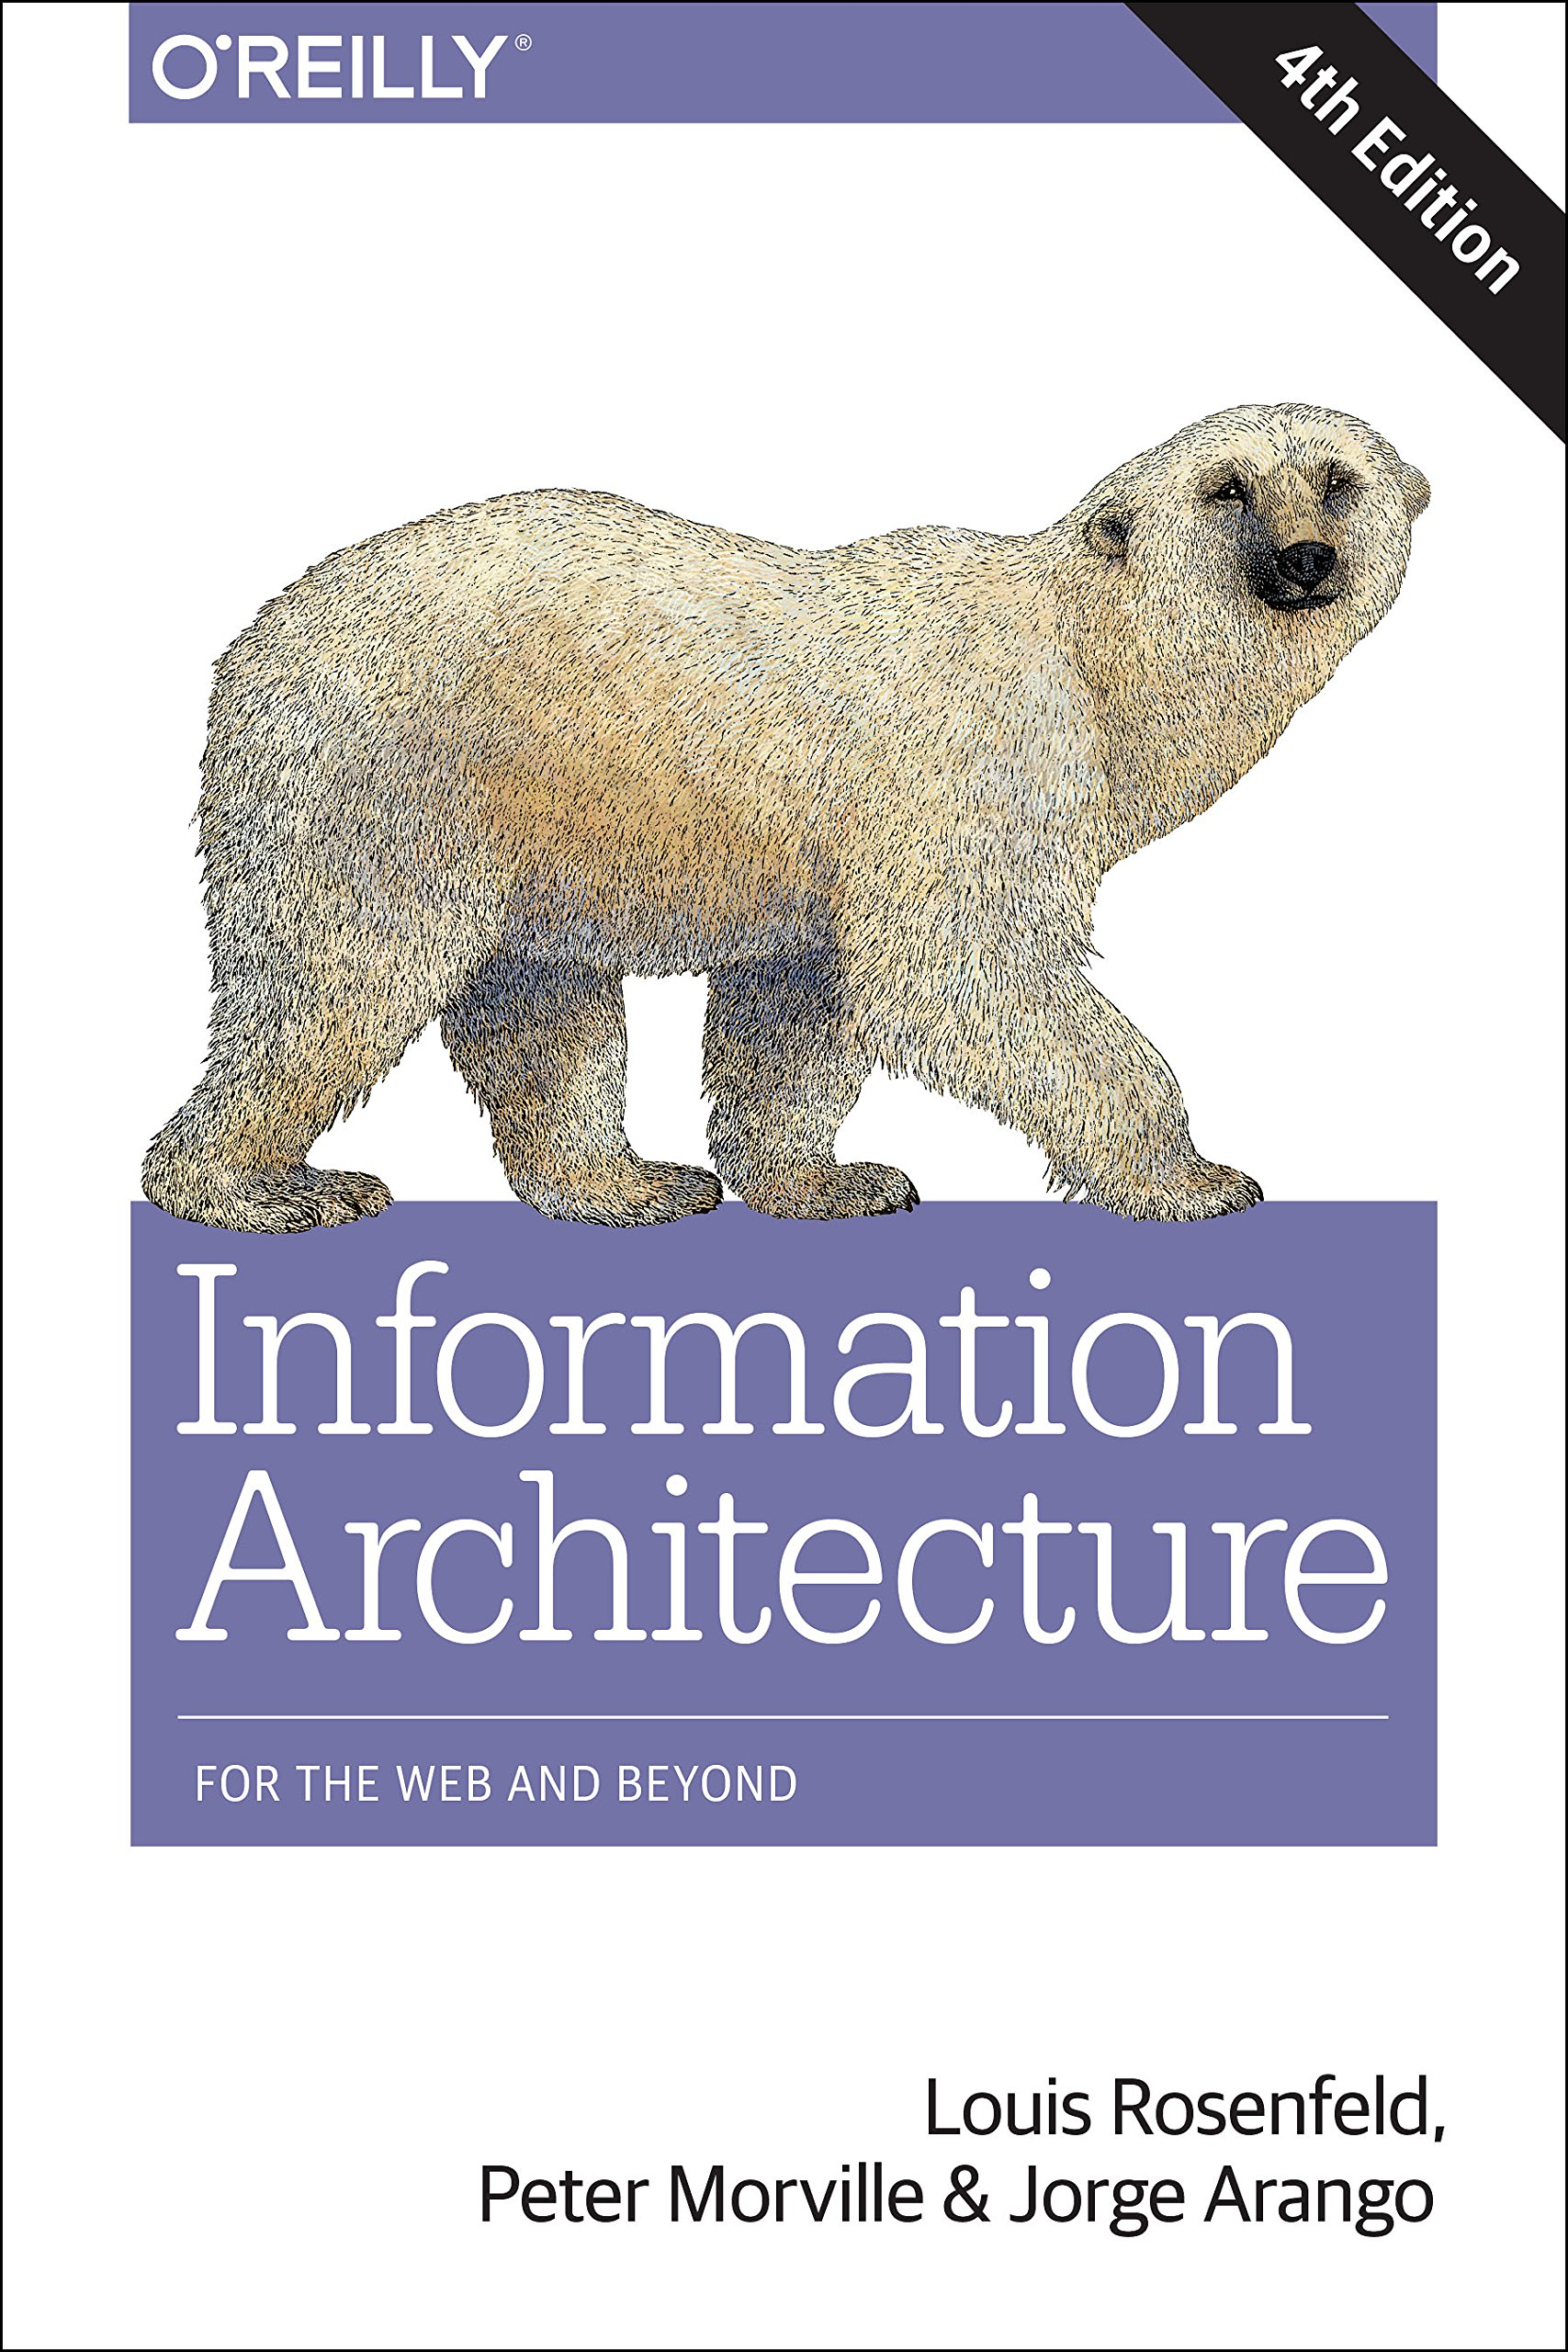 Information Architecture: For the Web and Beyond by O'Reilly Media